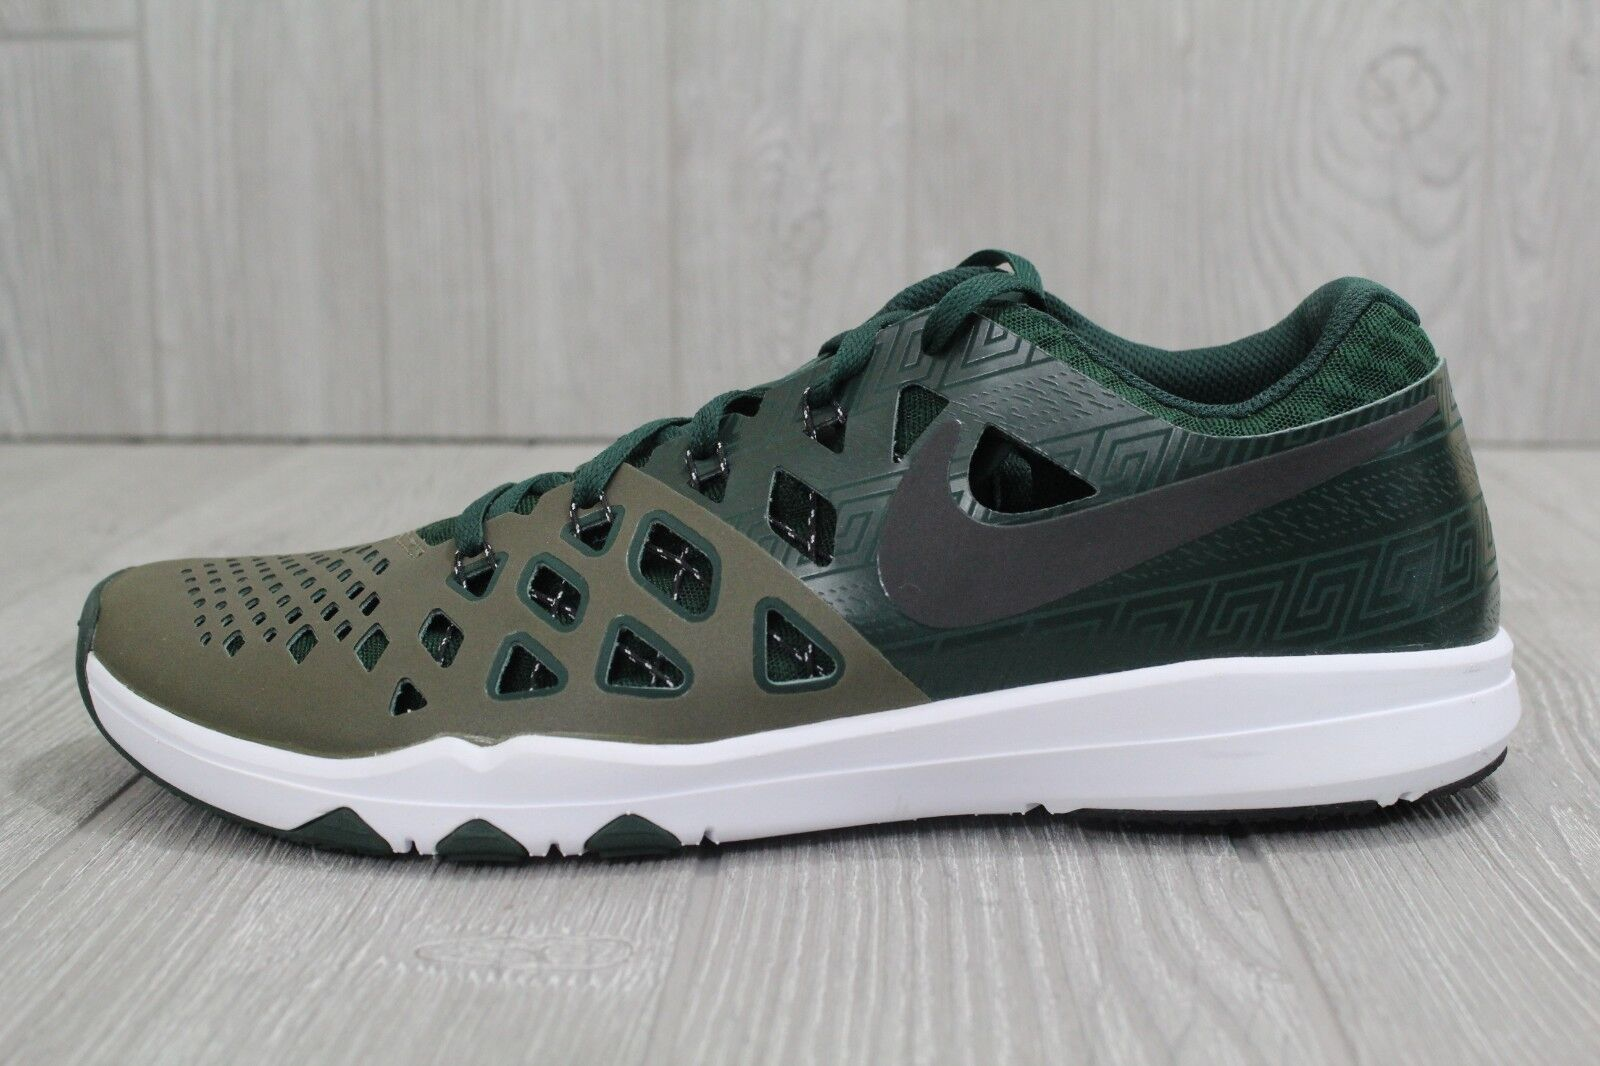 27 27 27 Nike Train Speed Amp 4 Michigan State Spartans Shoes 844102-309 Mens 10.5 11 2c7b27